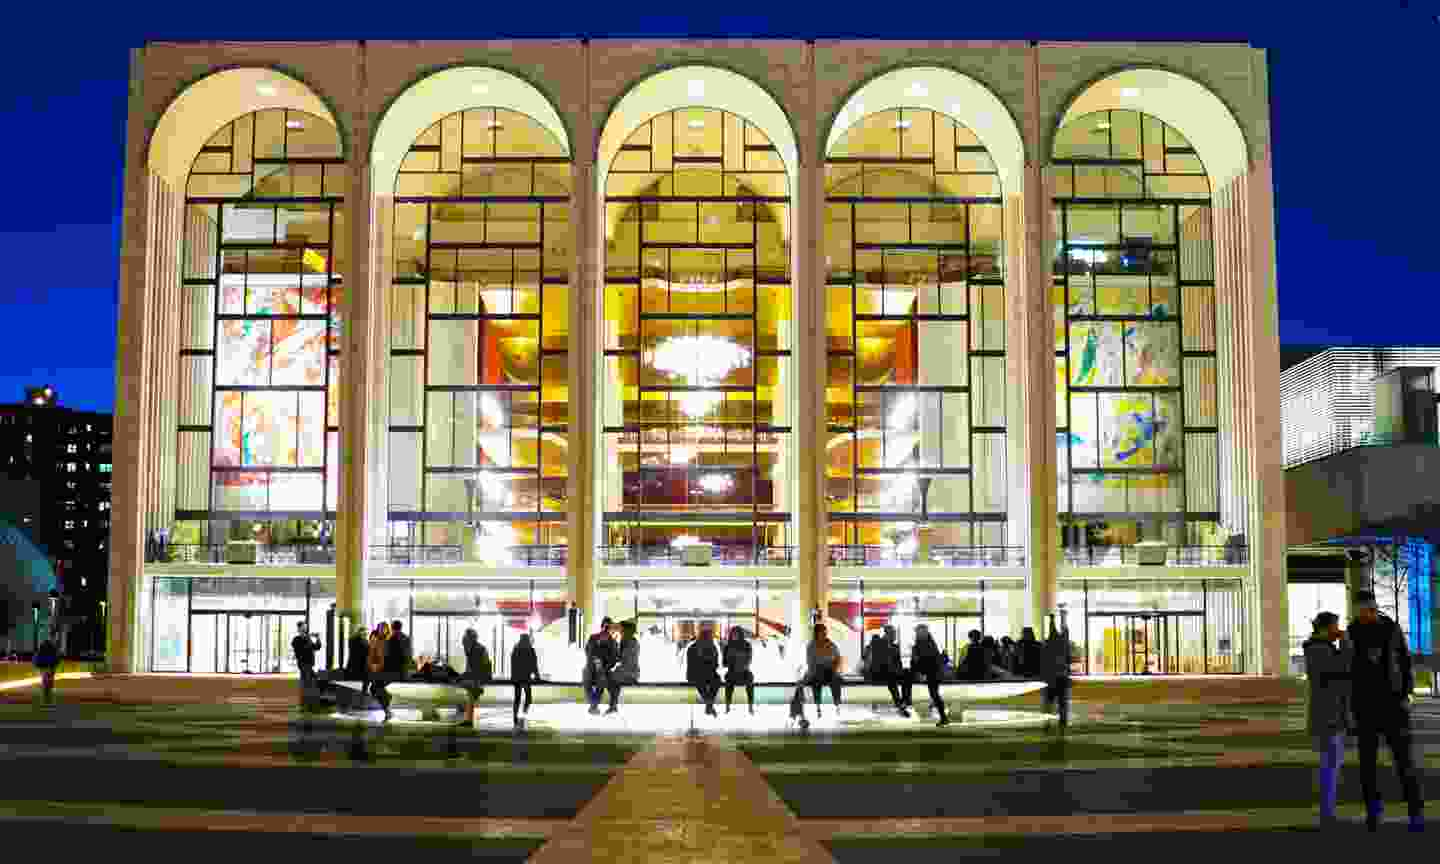 The famous arched windows of the Metropolitan Opera House (Dreamstime)